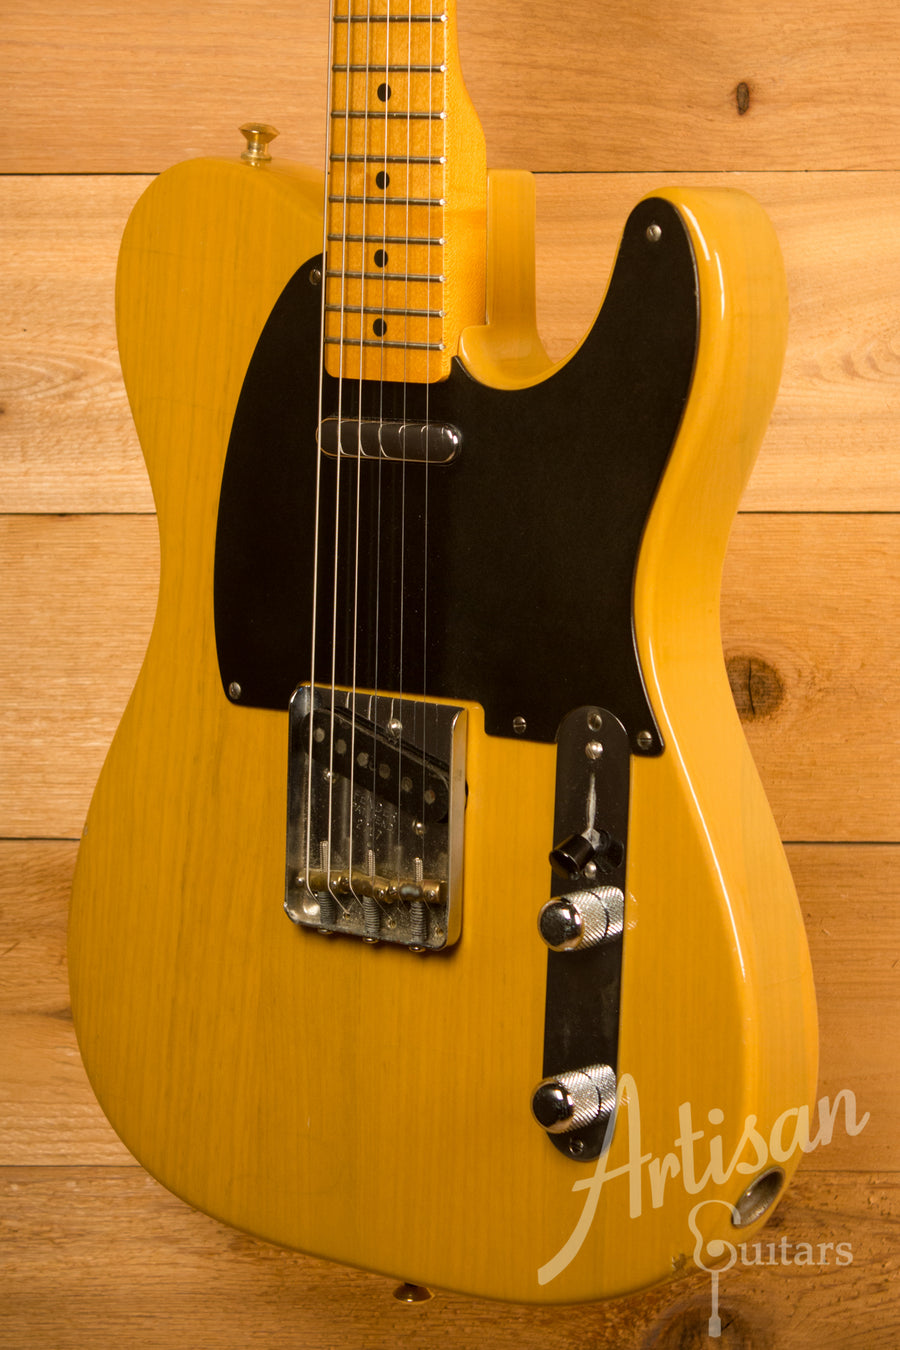 Fender Fullerton Era American Vintage 1952 RI Telecaster Butterscotch Blonde Pre-Owned 1982 ID-11626